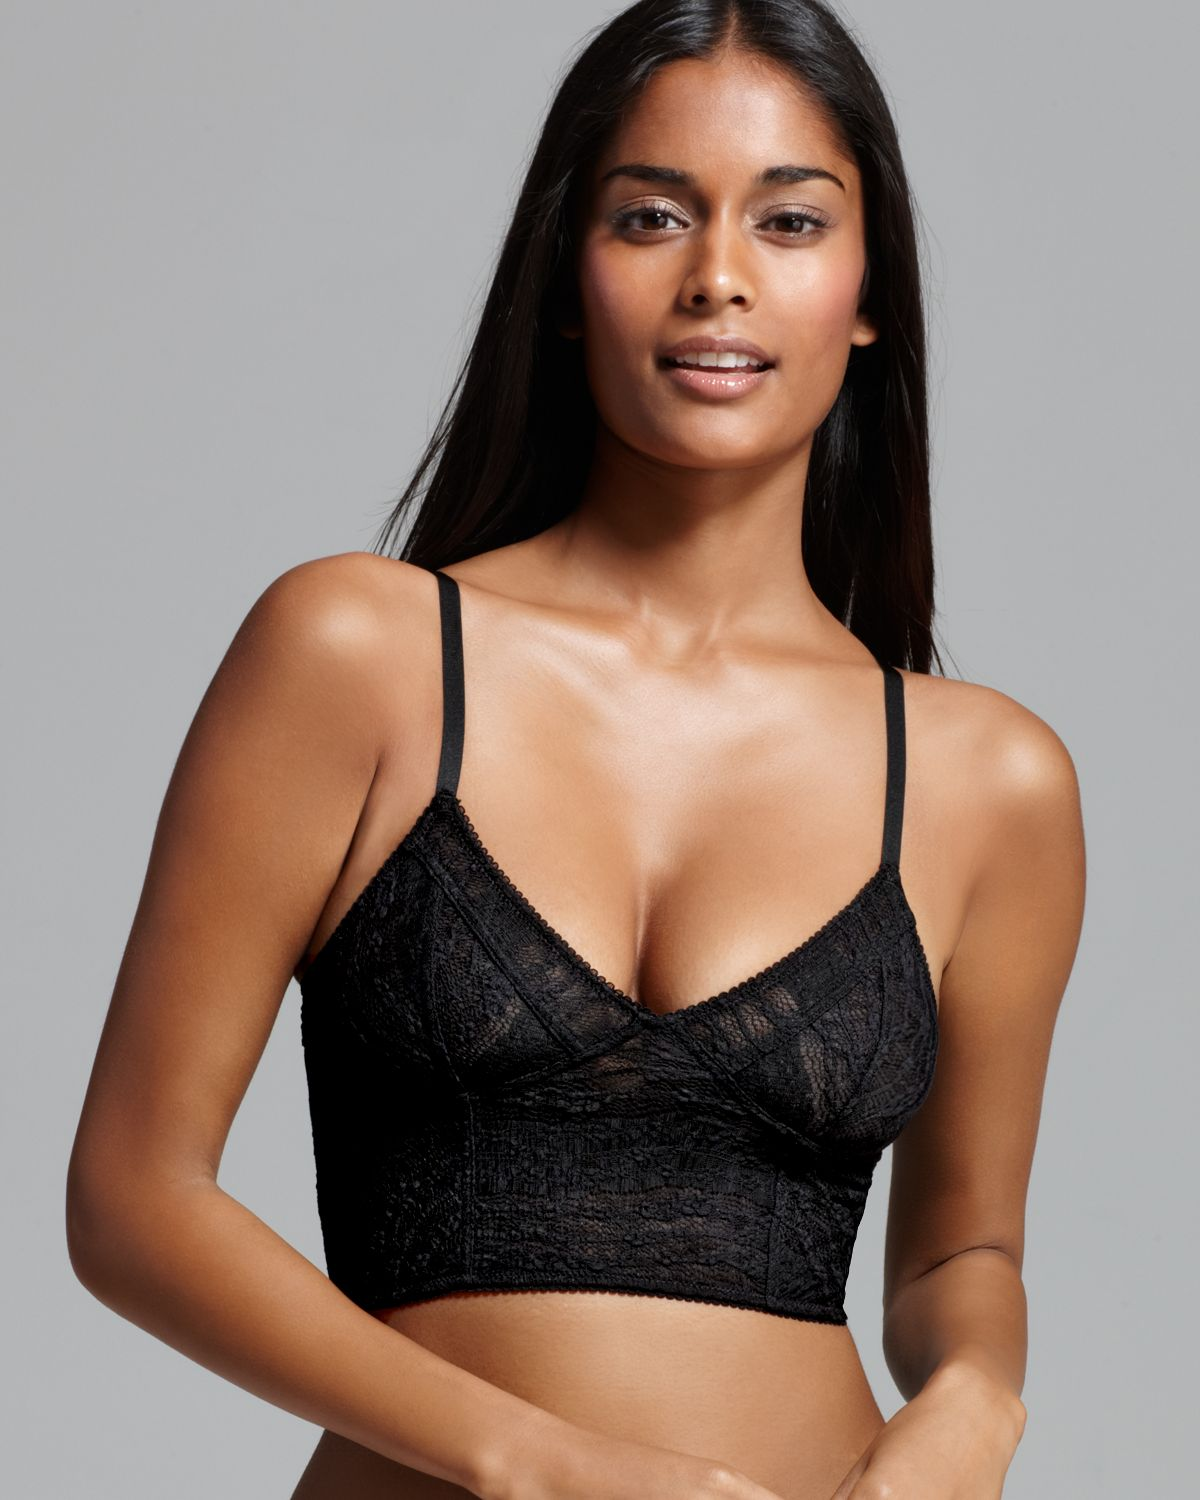 Women Lace Bralette Bra Bustier Crop Tops Black Cropped Blusas Vest. Brand New. $ From China. Buy It Now +$ shipping. SPONSORED. Padded Lace Camisole Bustier Crop Top White and Black. Unbranded. $ Buy It Now. Free Shipping. Tell us what you think - opens in new window or tab.